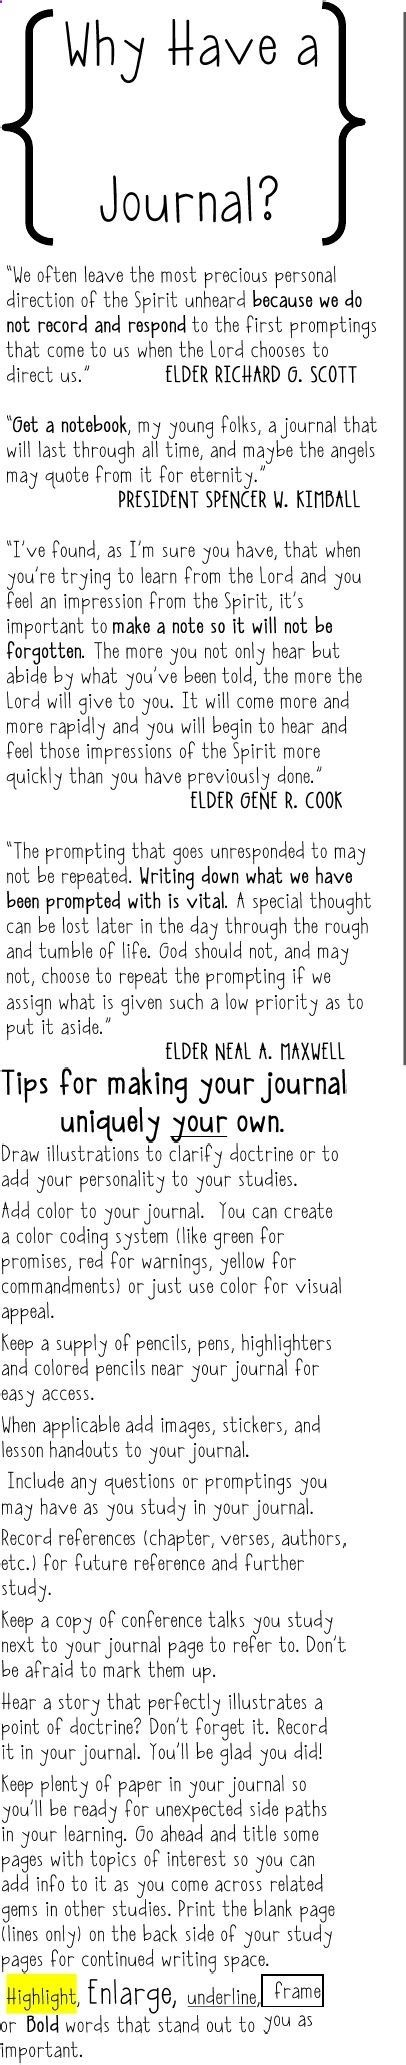 LDS journaling tips for a more fulfilling and spiritual journaling experience. I need to journal